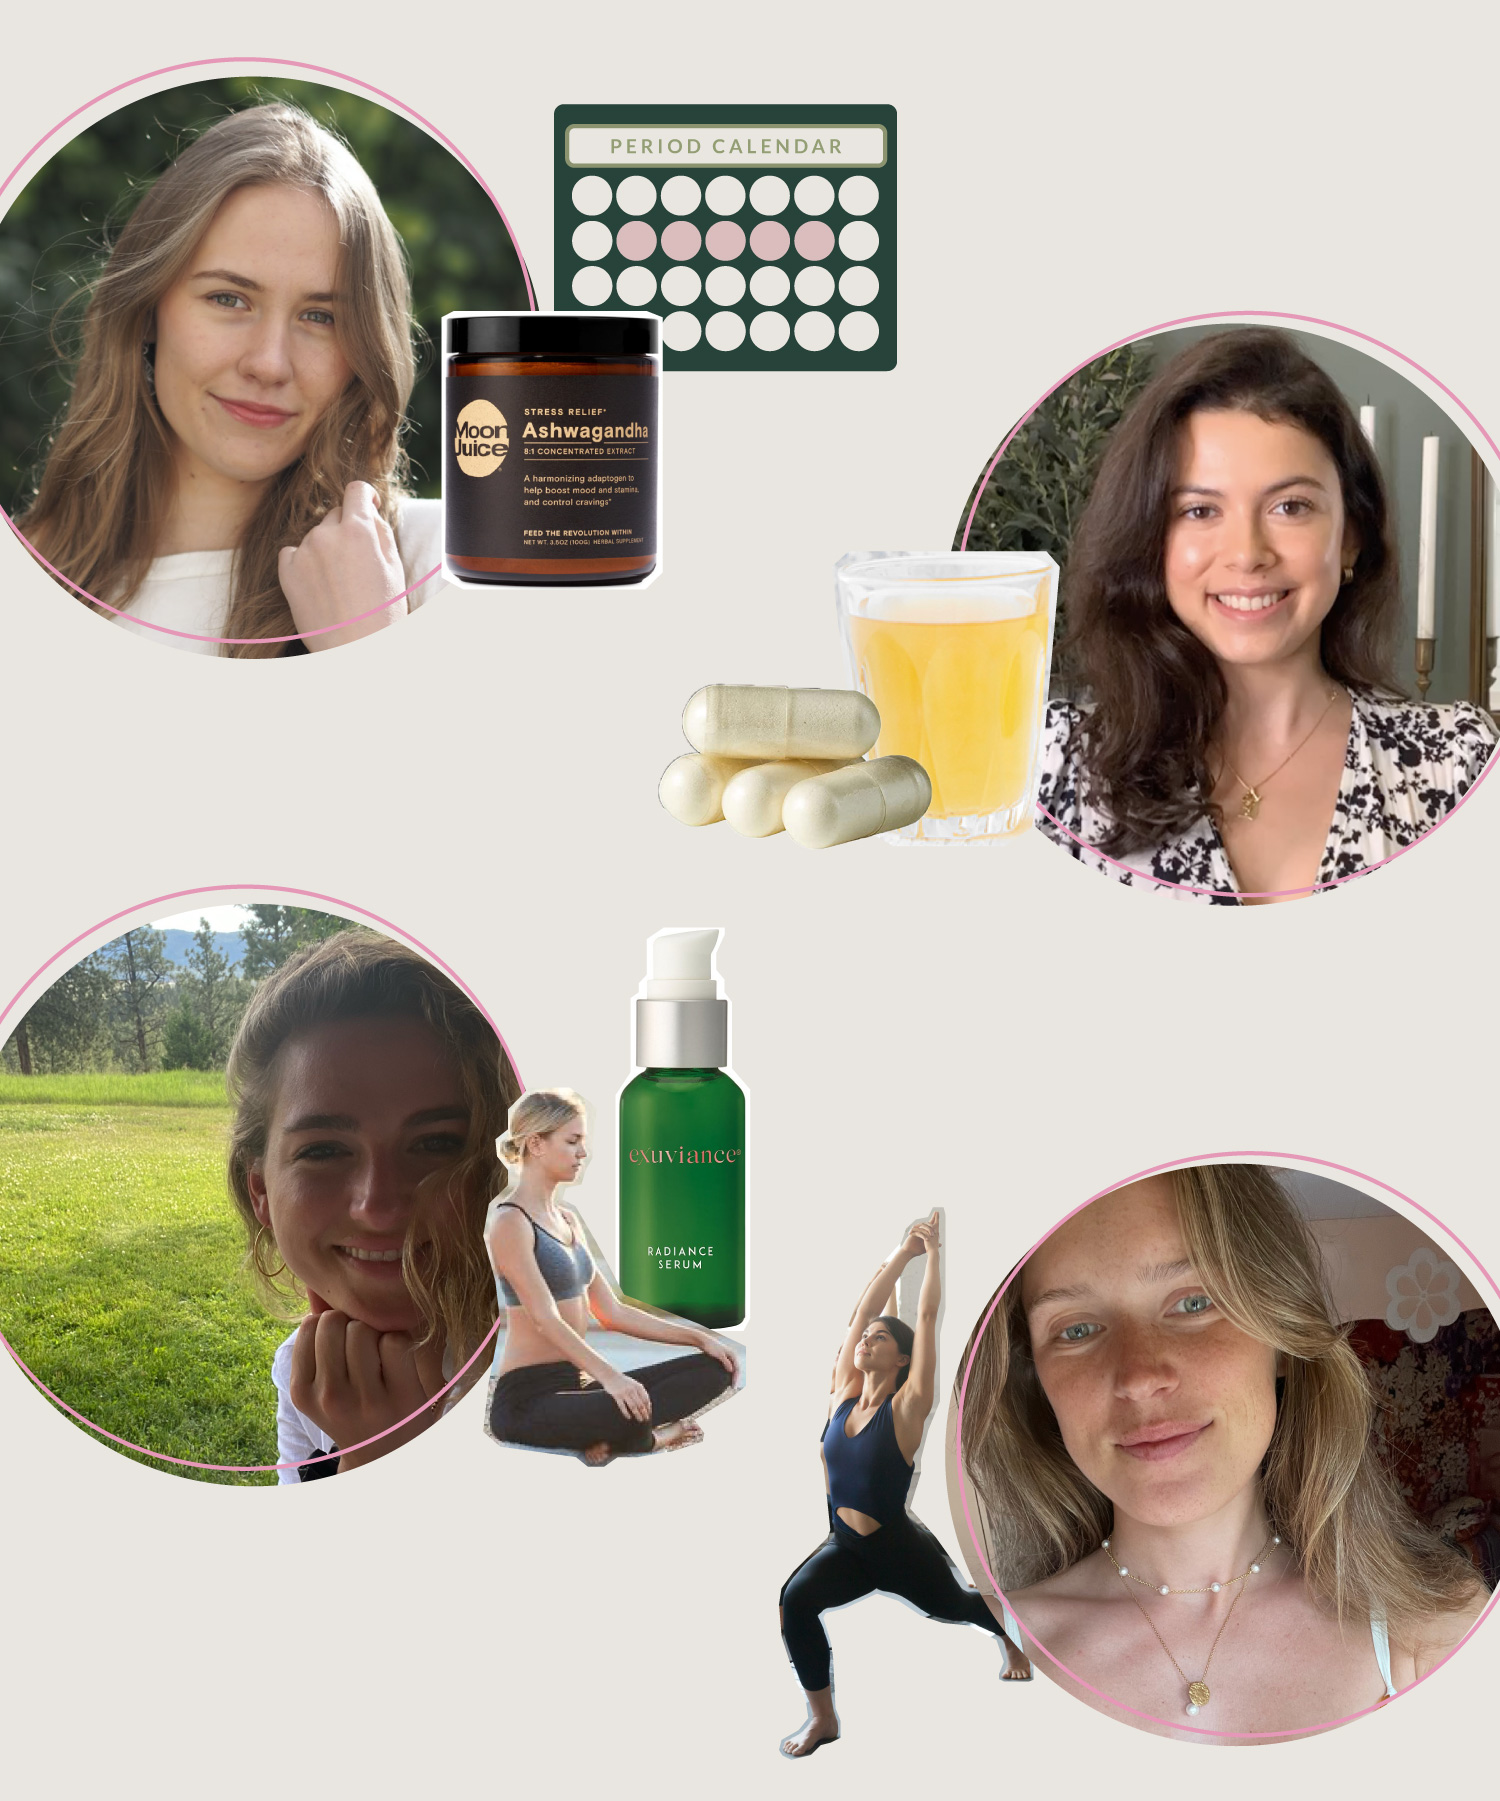 How to help your skin with a hormonal imbalance, according to Lion/ne's Skin Mentors